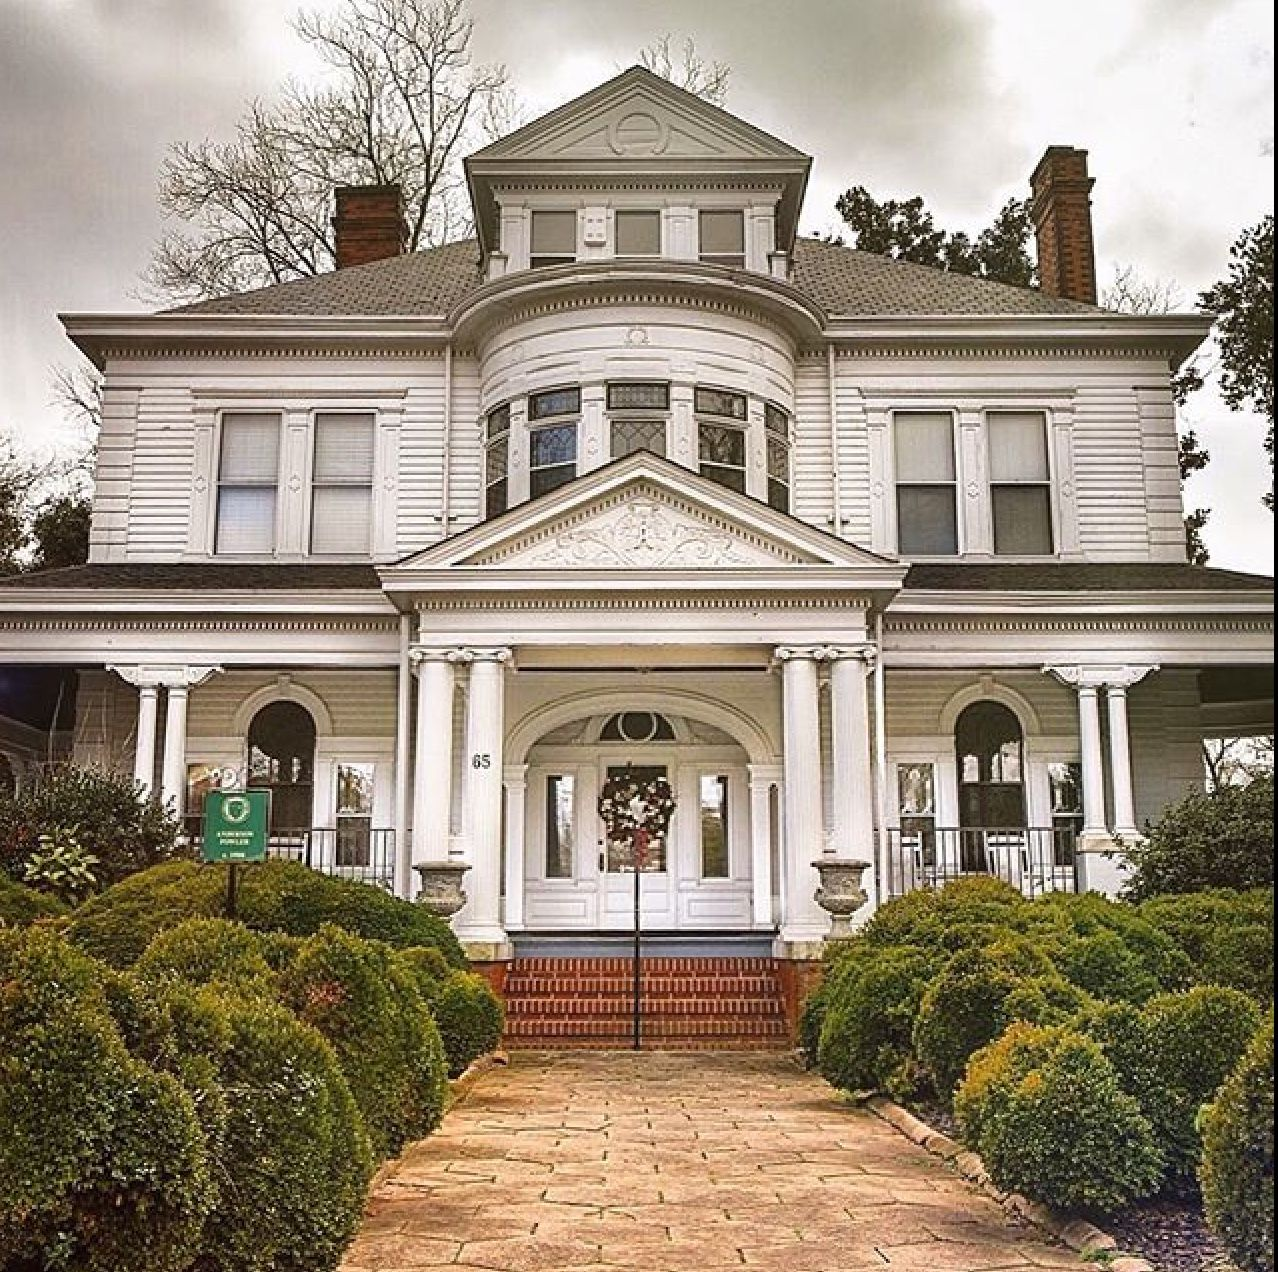 Pin By Jan P. On Houses With History